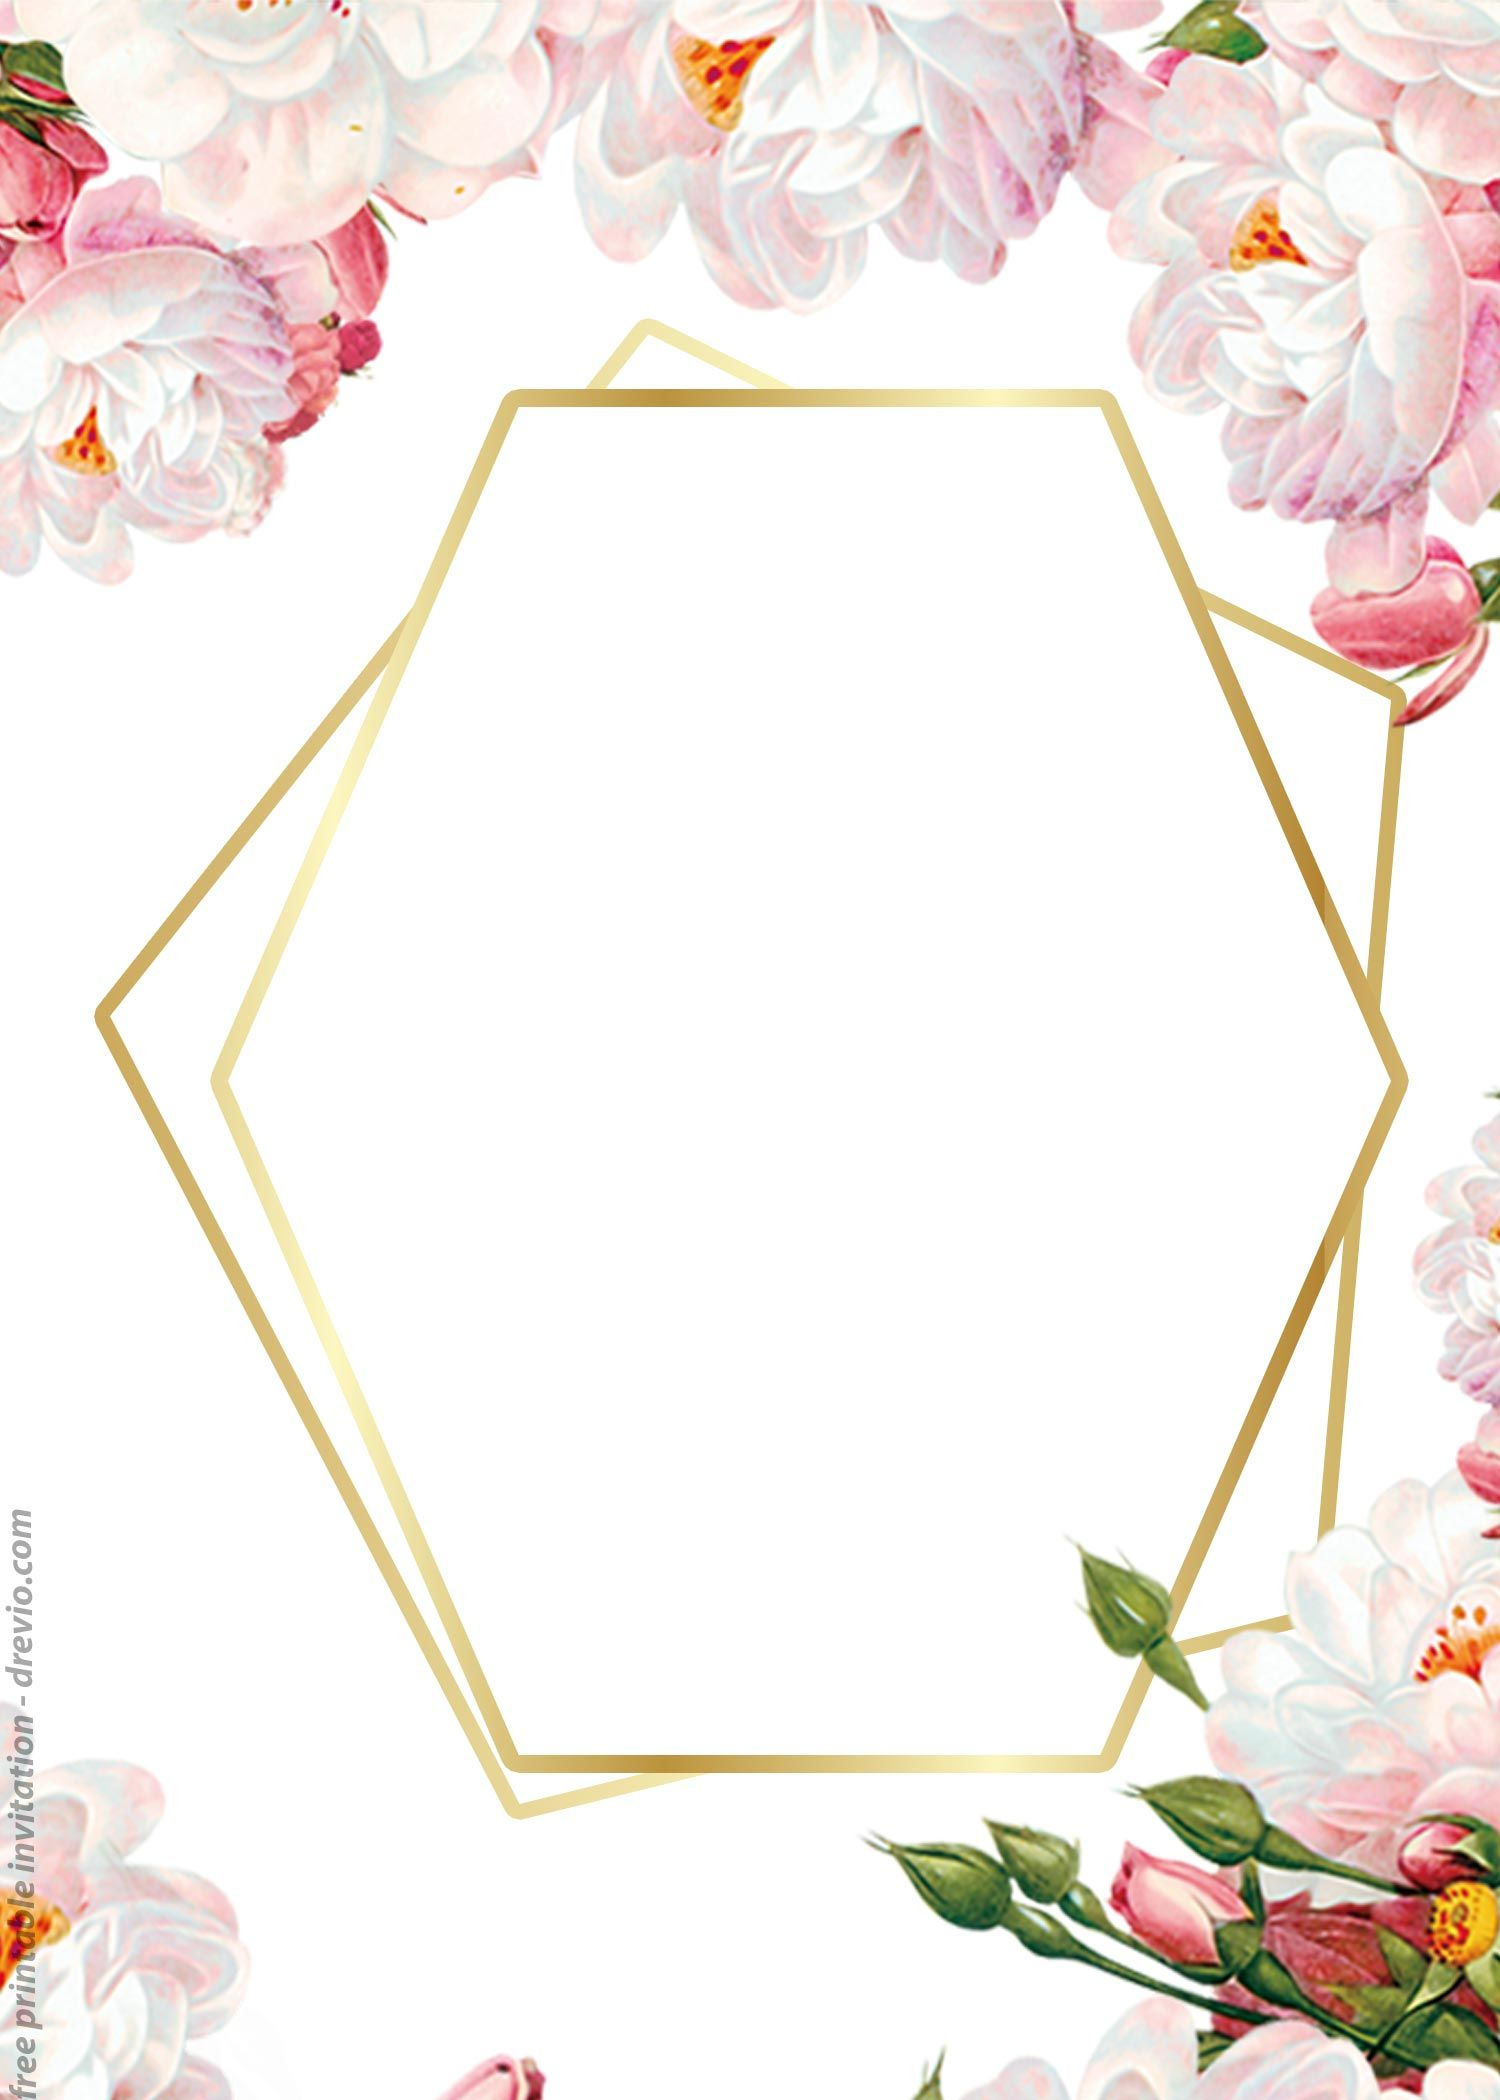 Floral Border With Geometric Frame For Wedding Invitation Card